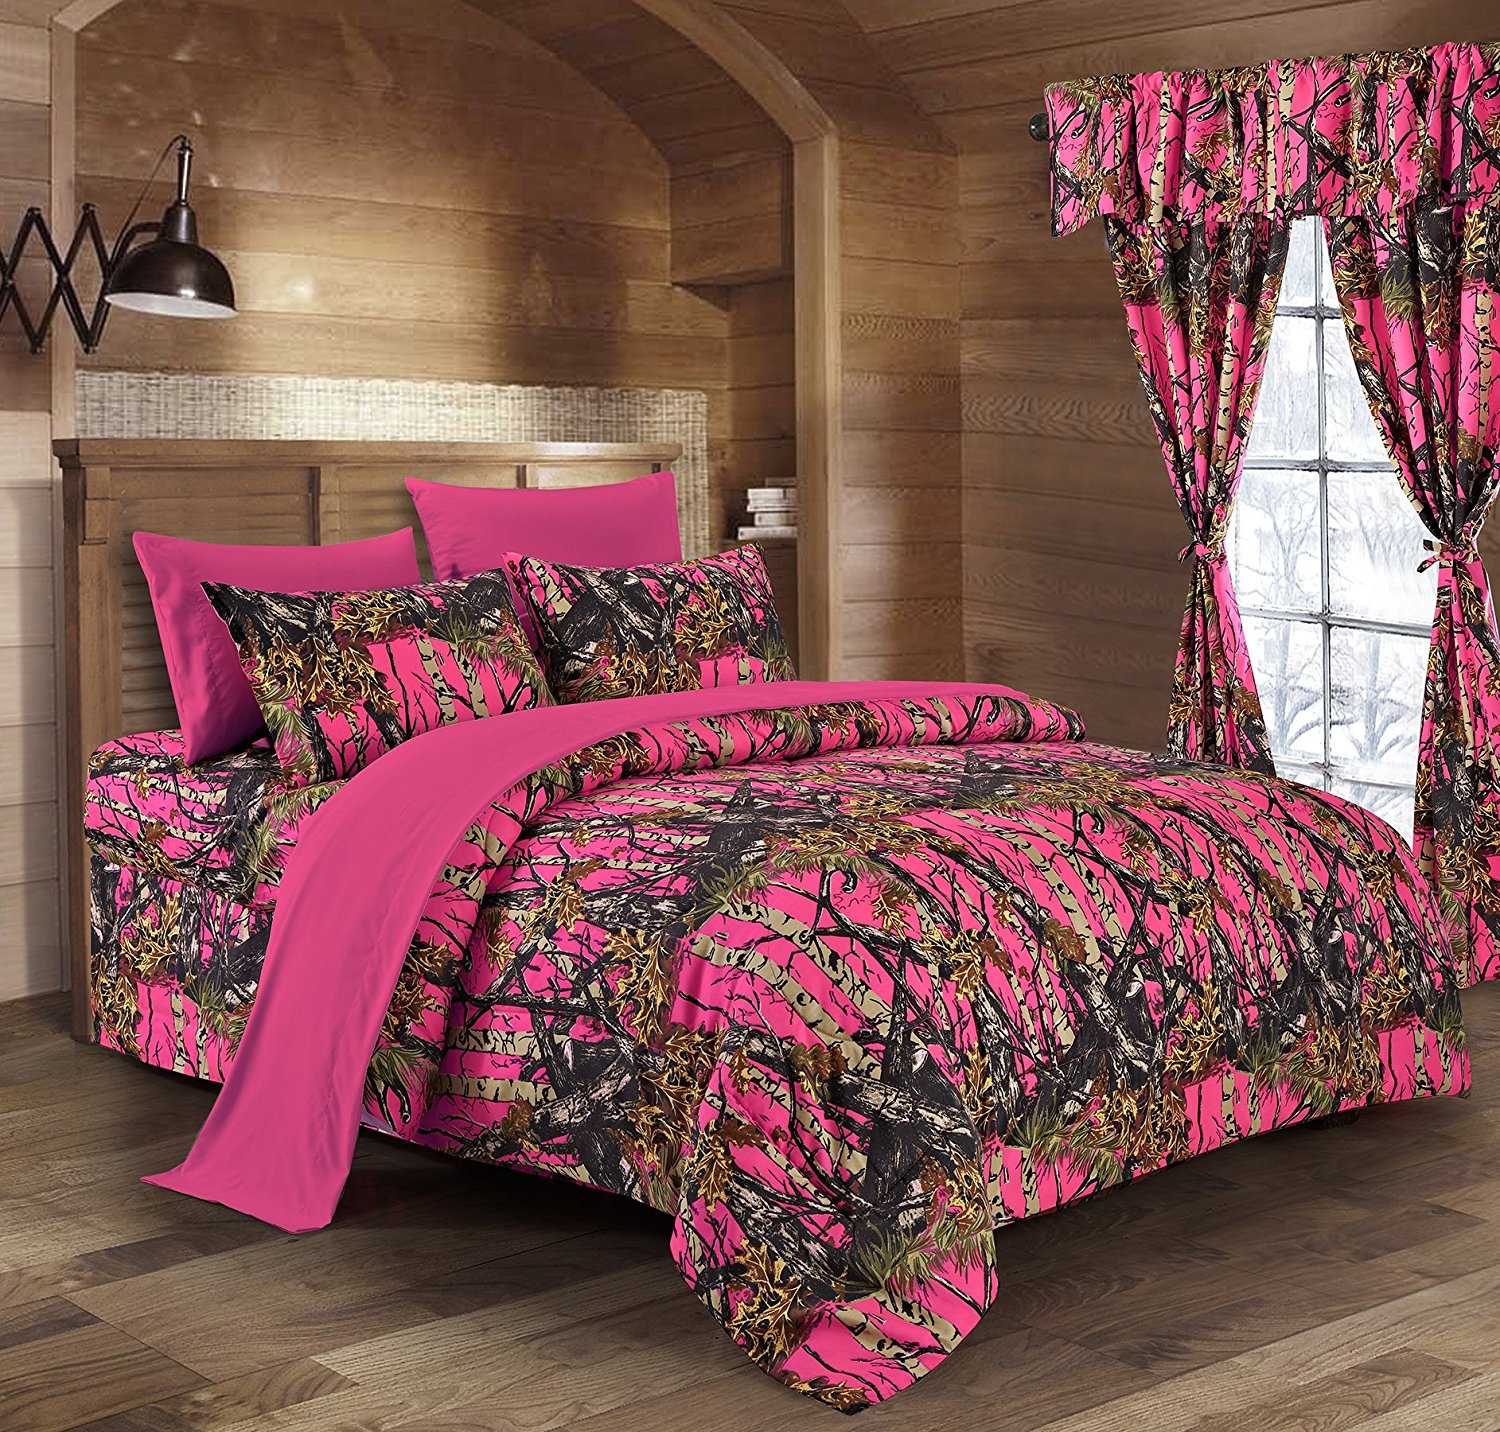 Day Glow Pink Camo Sheet Set The Swamp Company